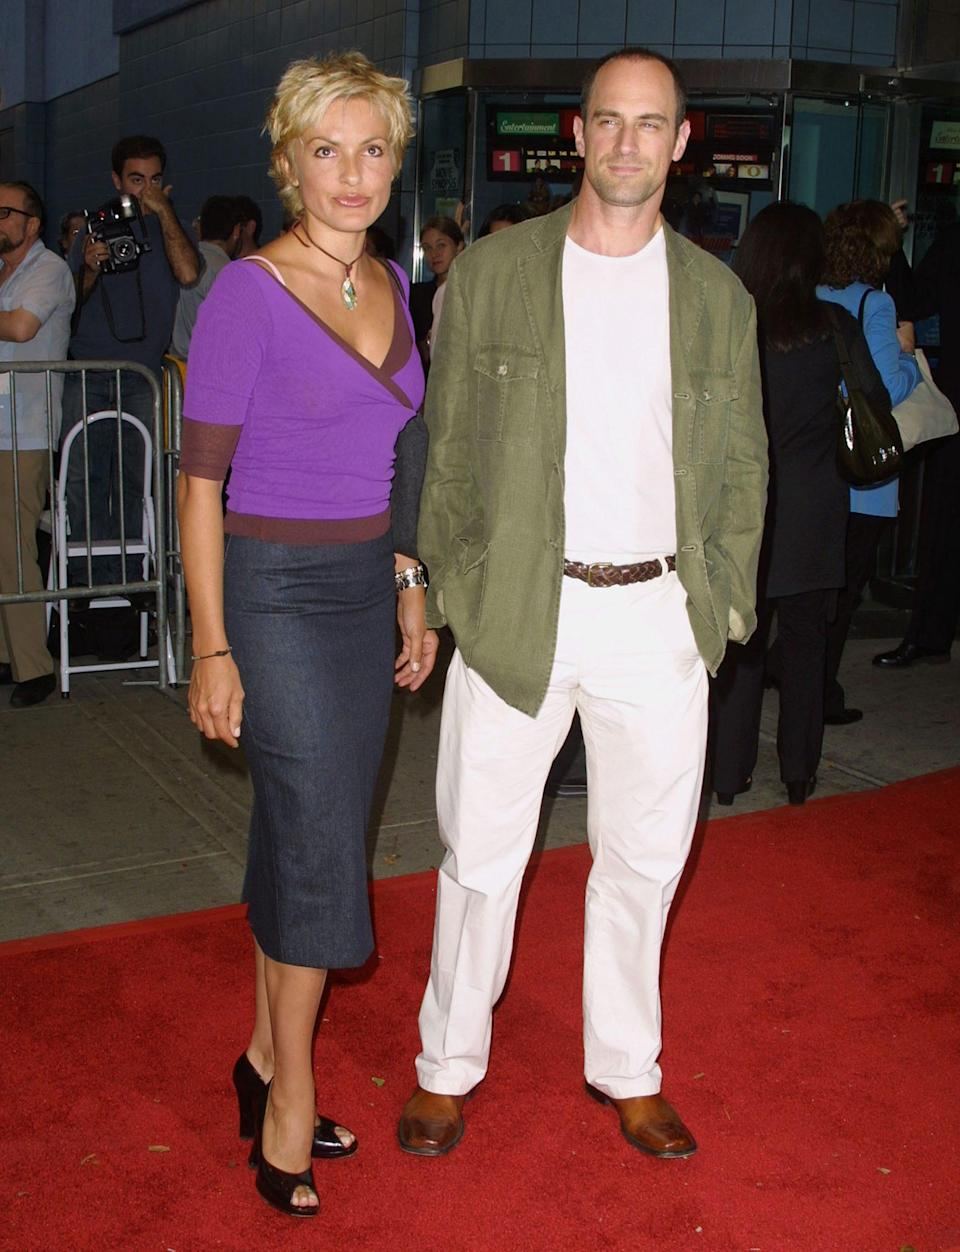 <p>Milestones that included seeing each other get married and have children ... and this blonde hair that Hargitay rocked in 2001. </p>